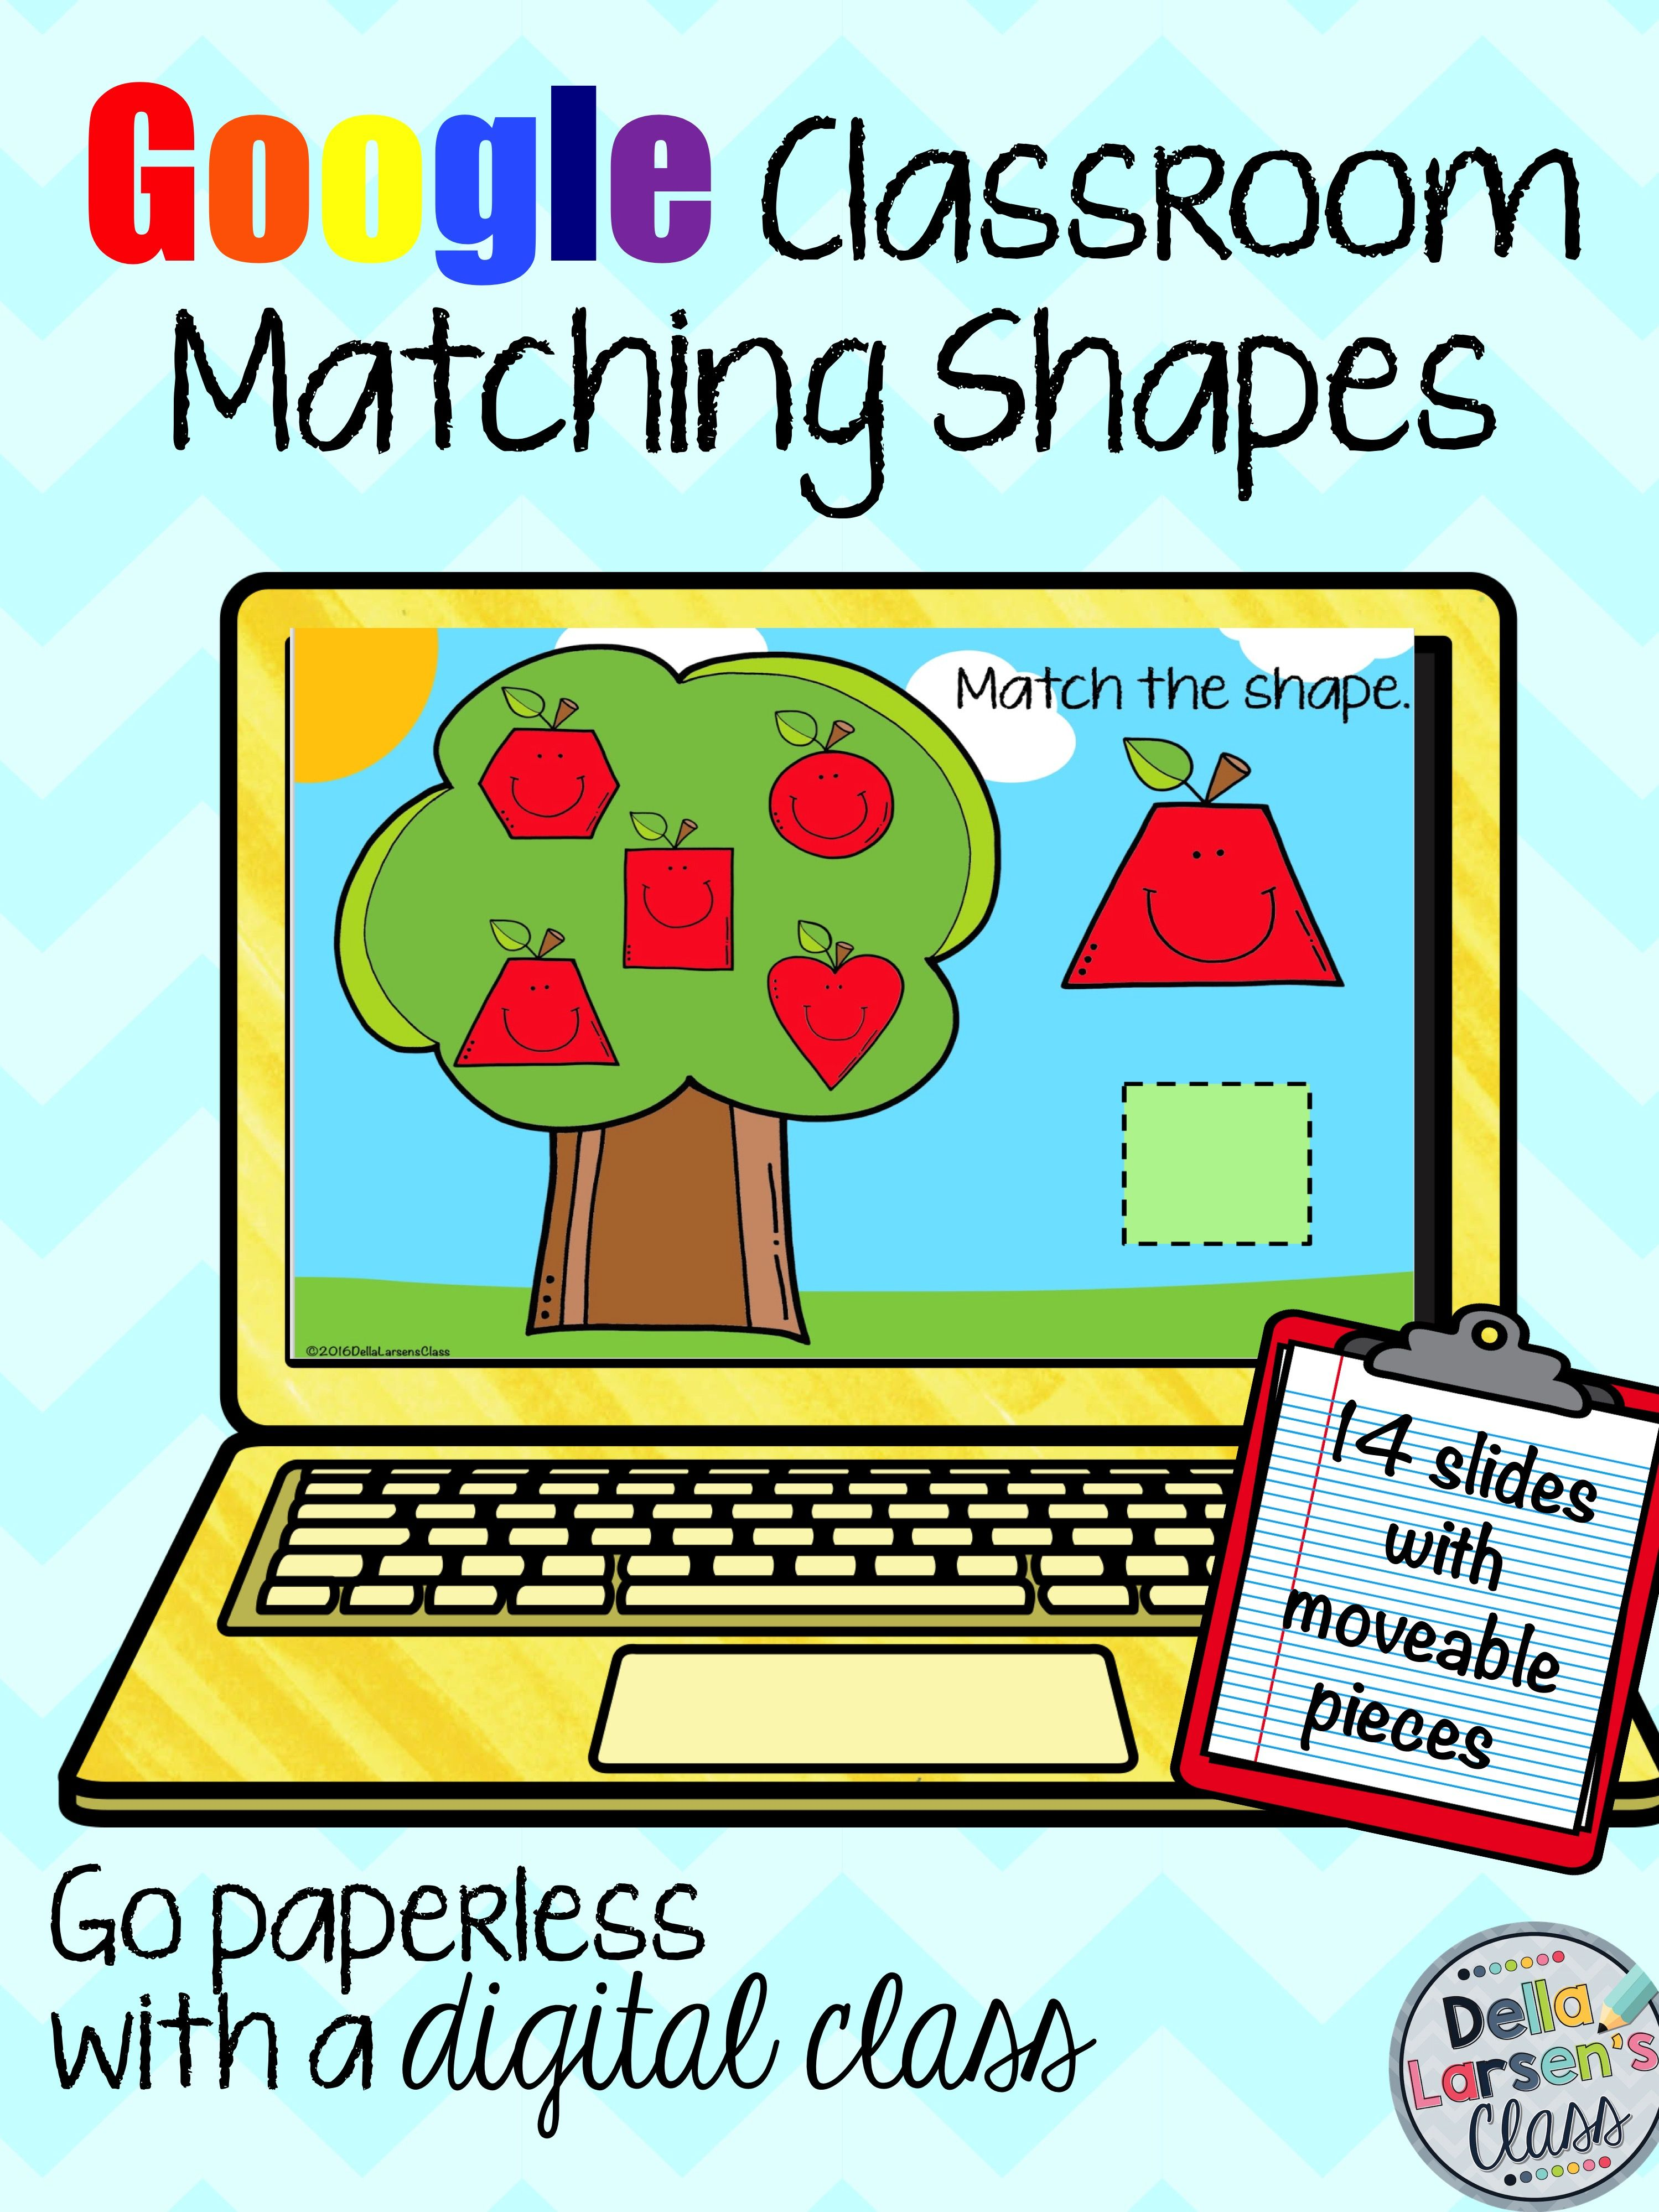 Let's go Google! A great addition to your digital math centers. Perfect for your apple unit. A fun way to teach shapes. Kids will love matching shapes with these interactive Google slides.